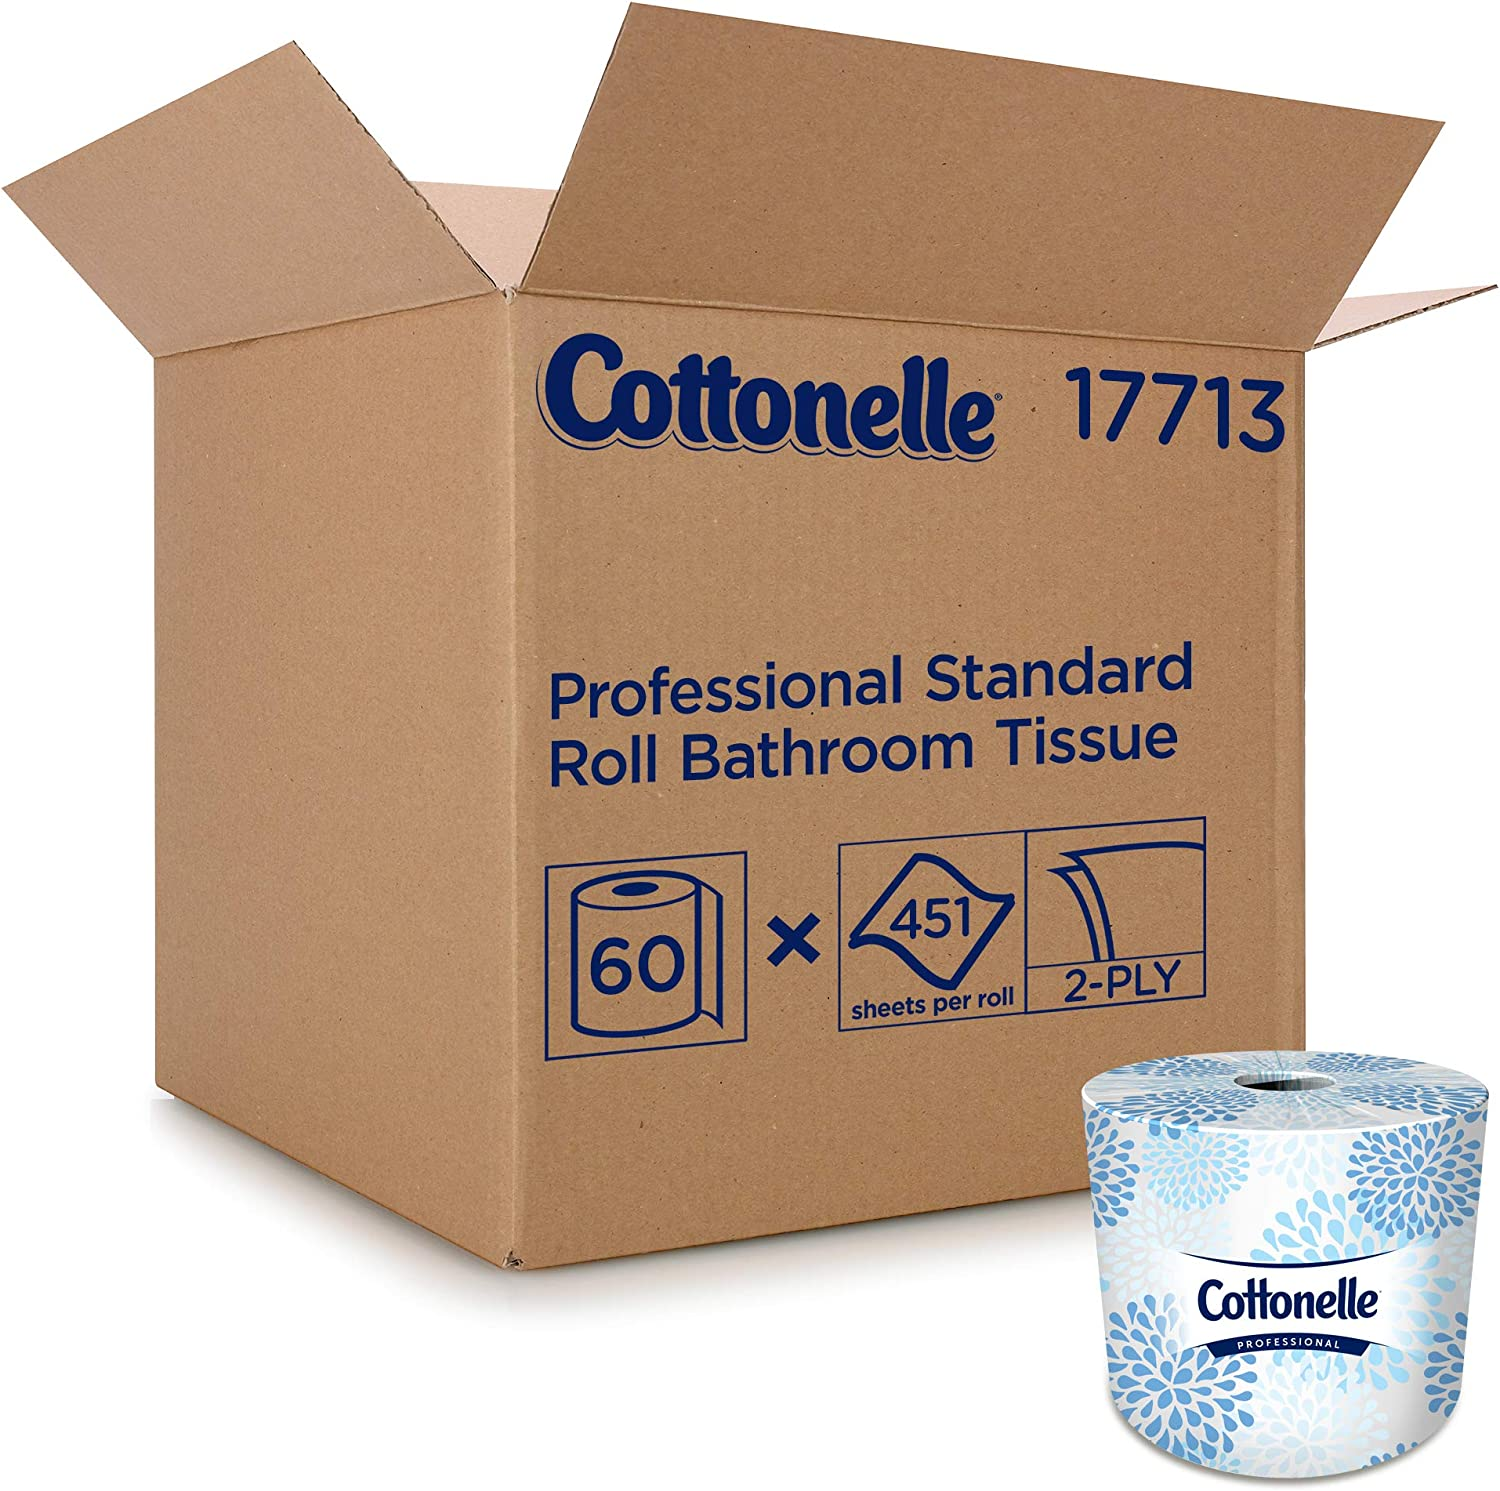 Cottonelle Professional Bulk Toilet Paper for Business (17713), Standard Toilet Paper Rolls, 2-Ply, White, 60 Rolls/Case, 451 Sheets/Roll : Health & Household